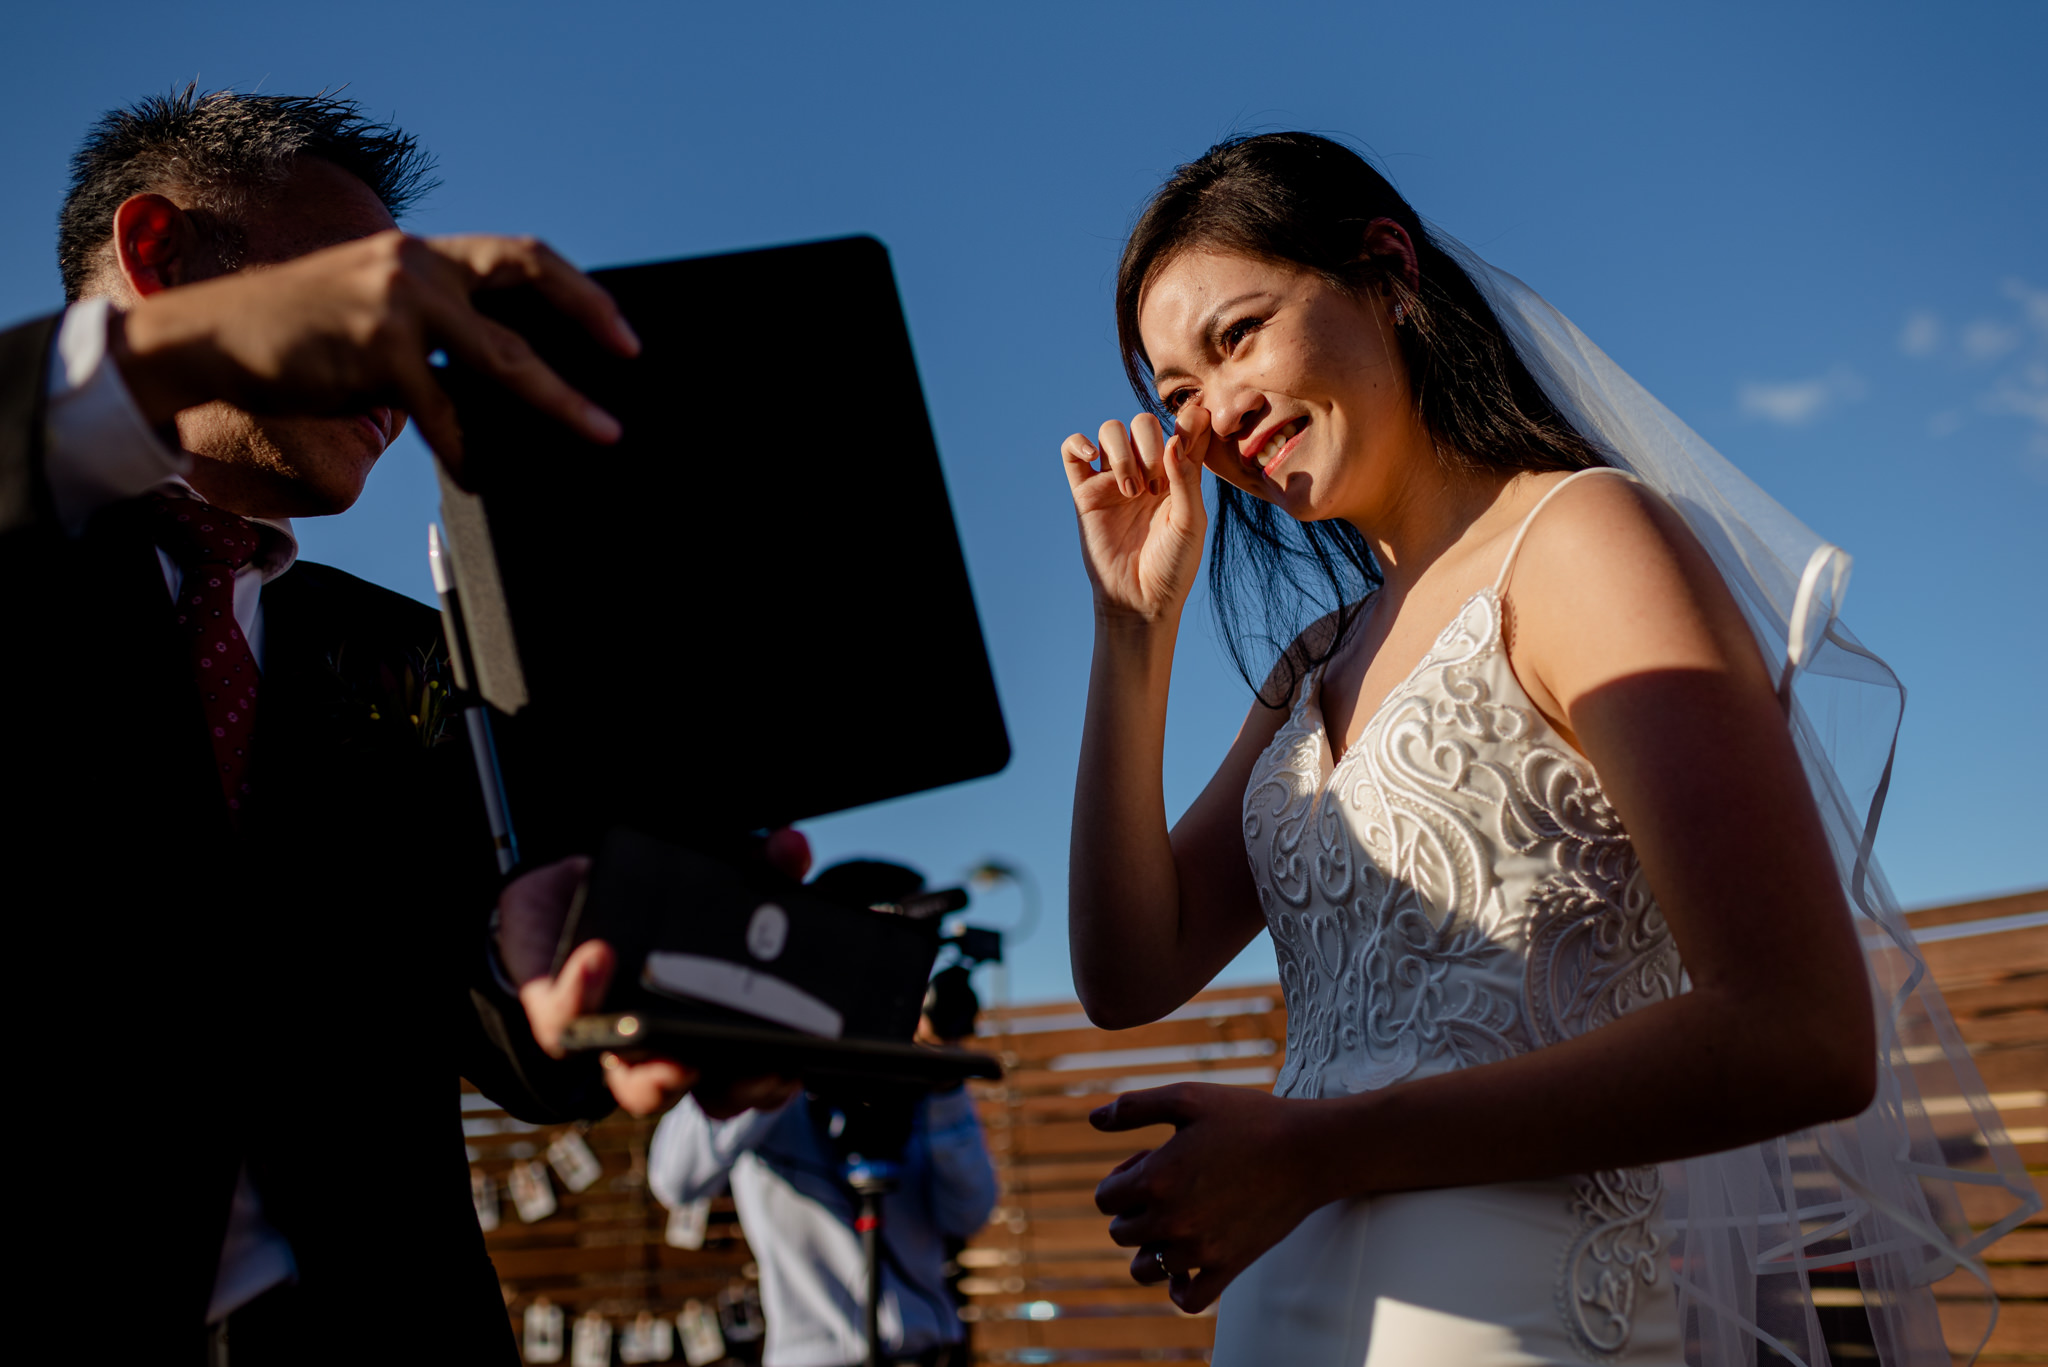 A crying bride wipes away tears as someone shows her a tablet